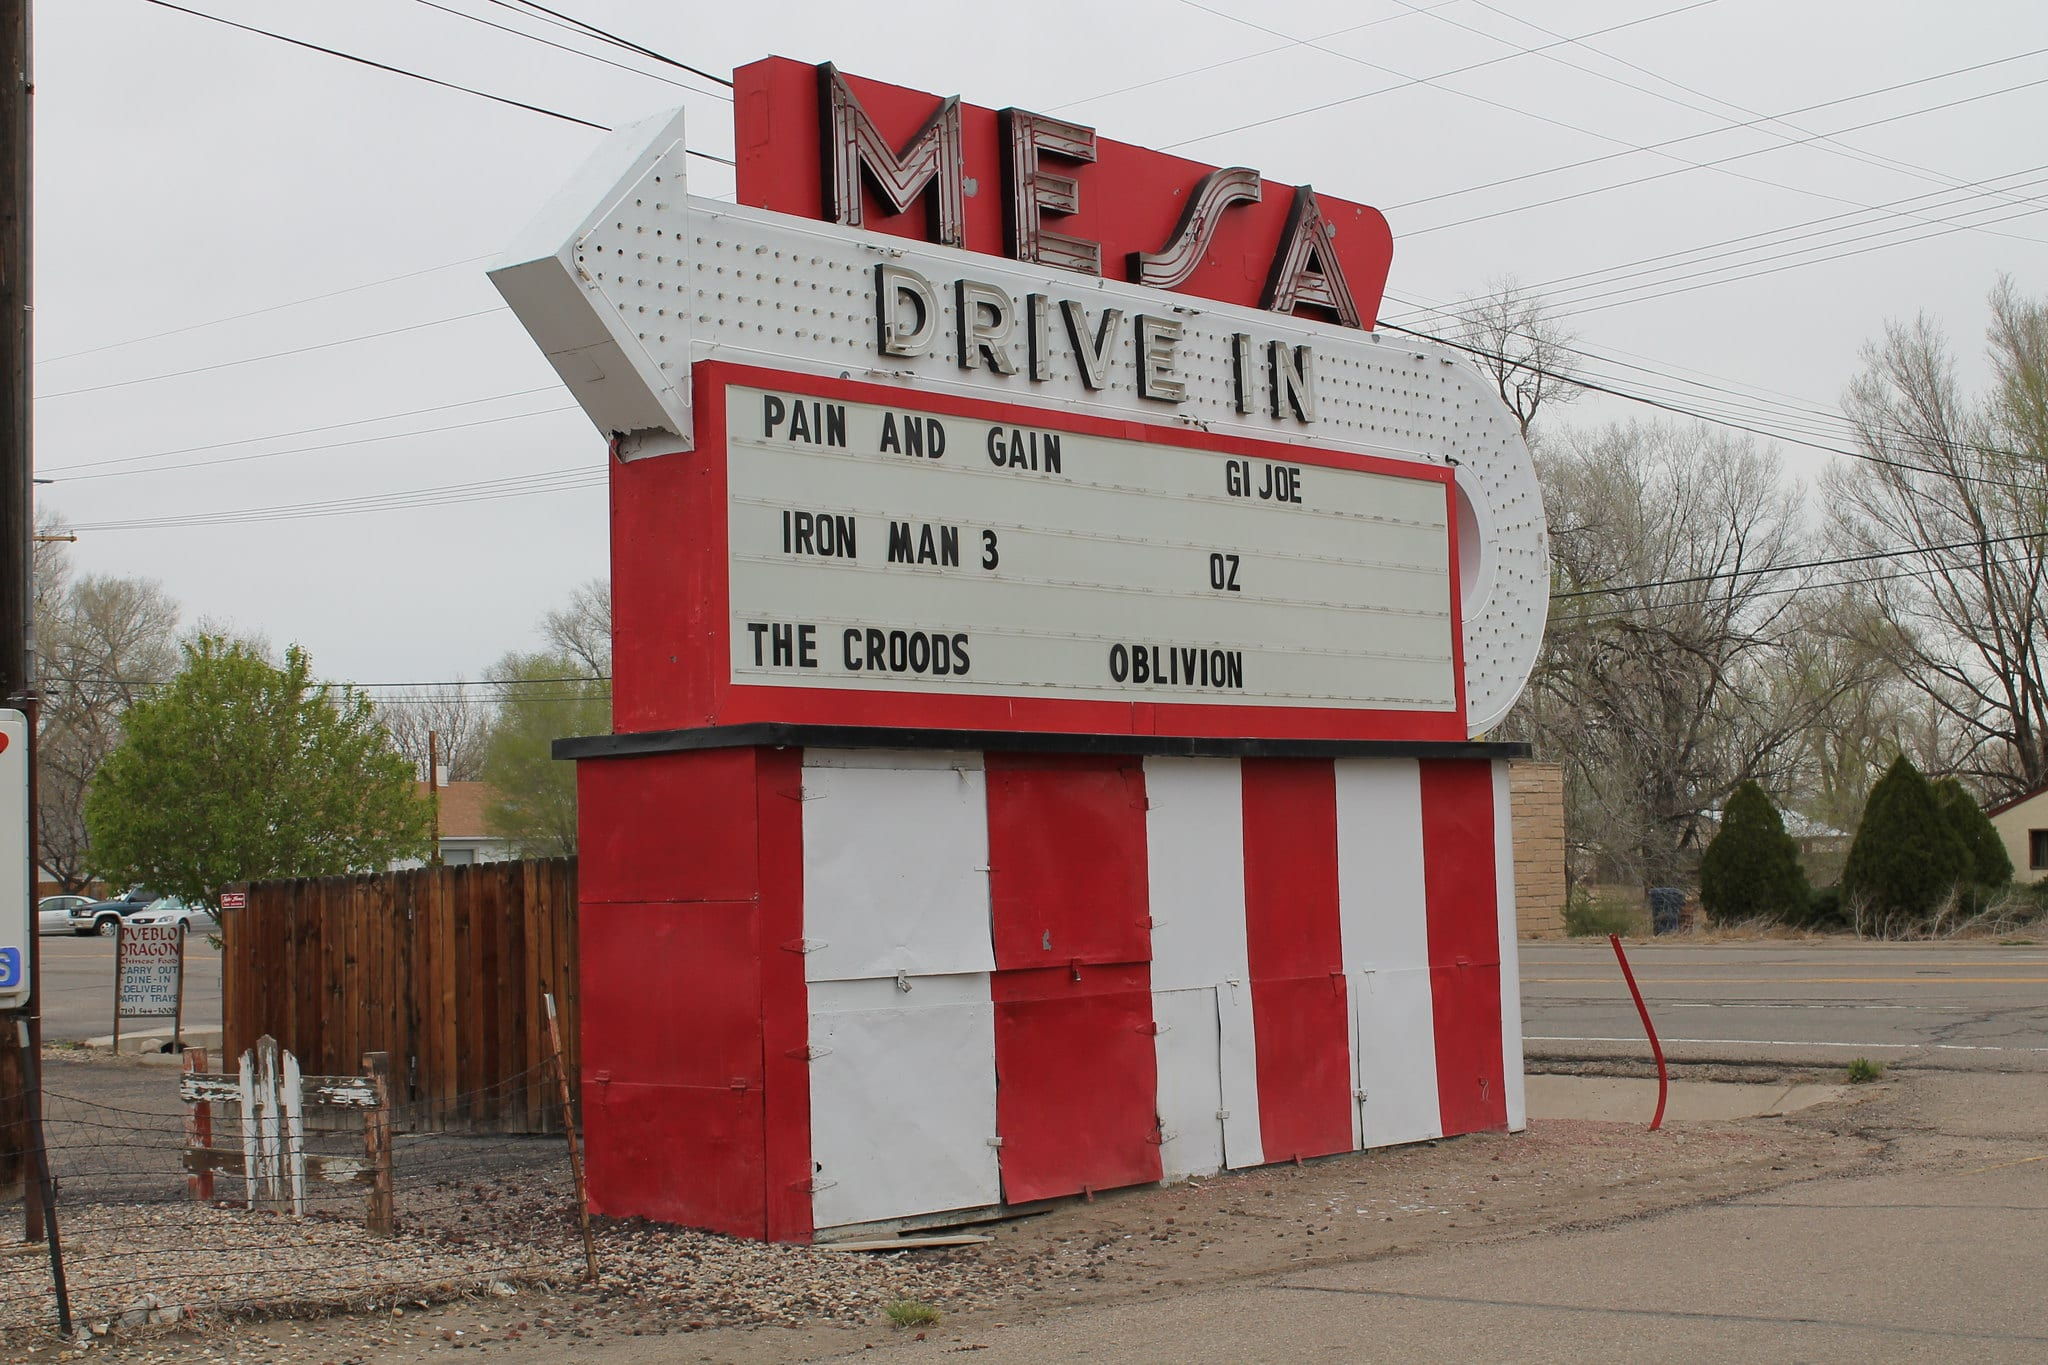 image of mesa drive-in